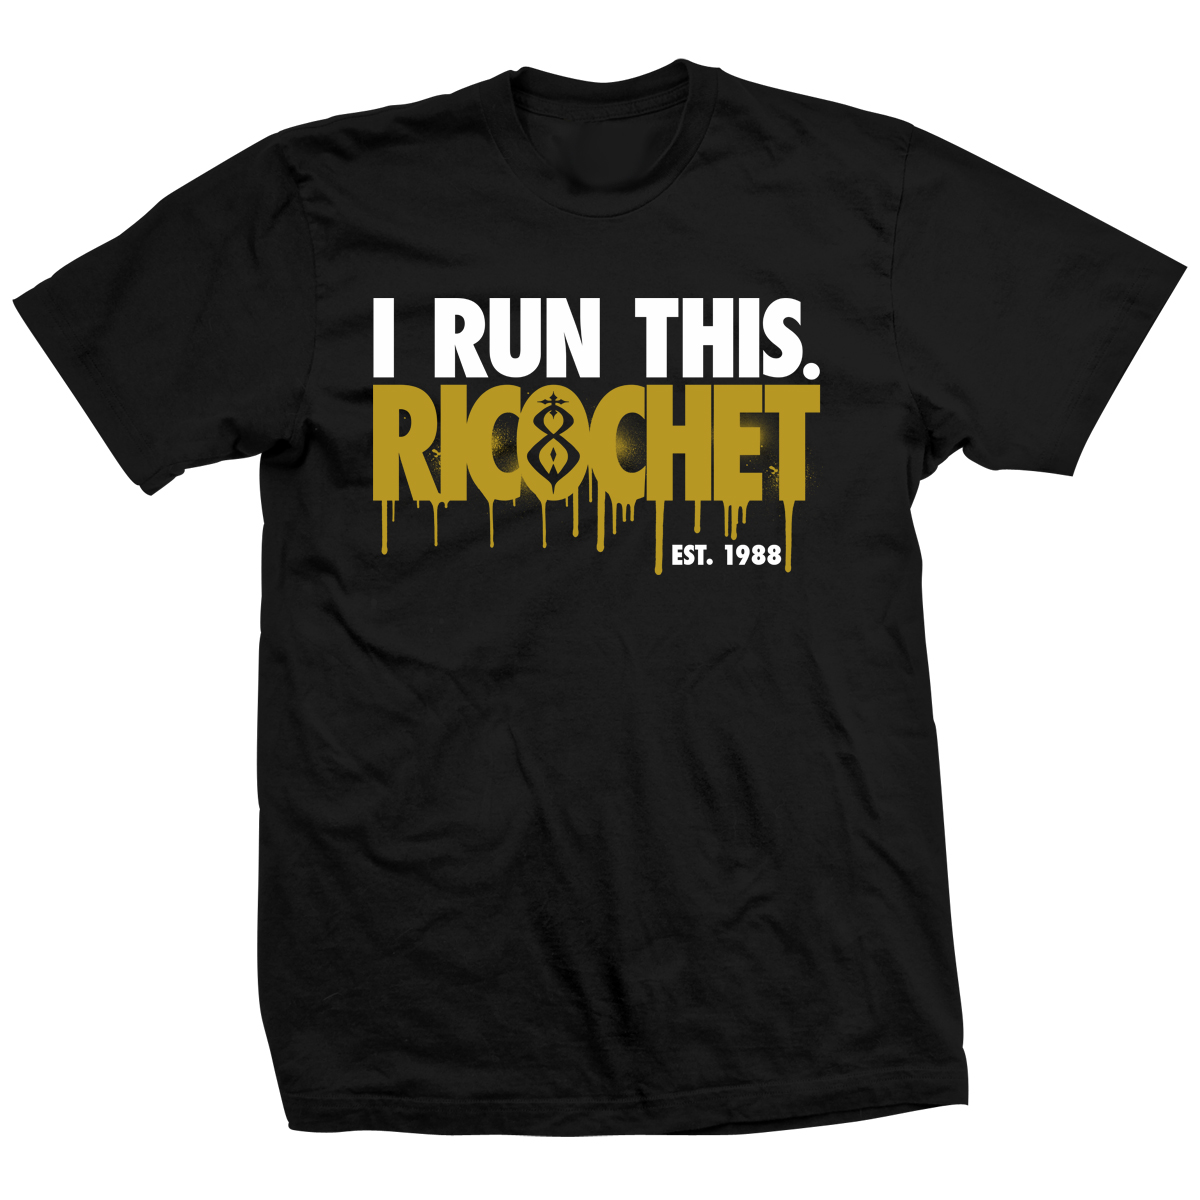 Ricochet I Run This. T-shirt